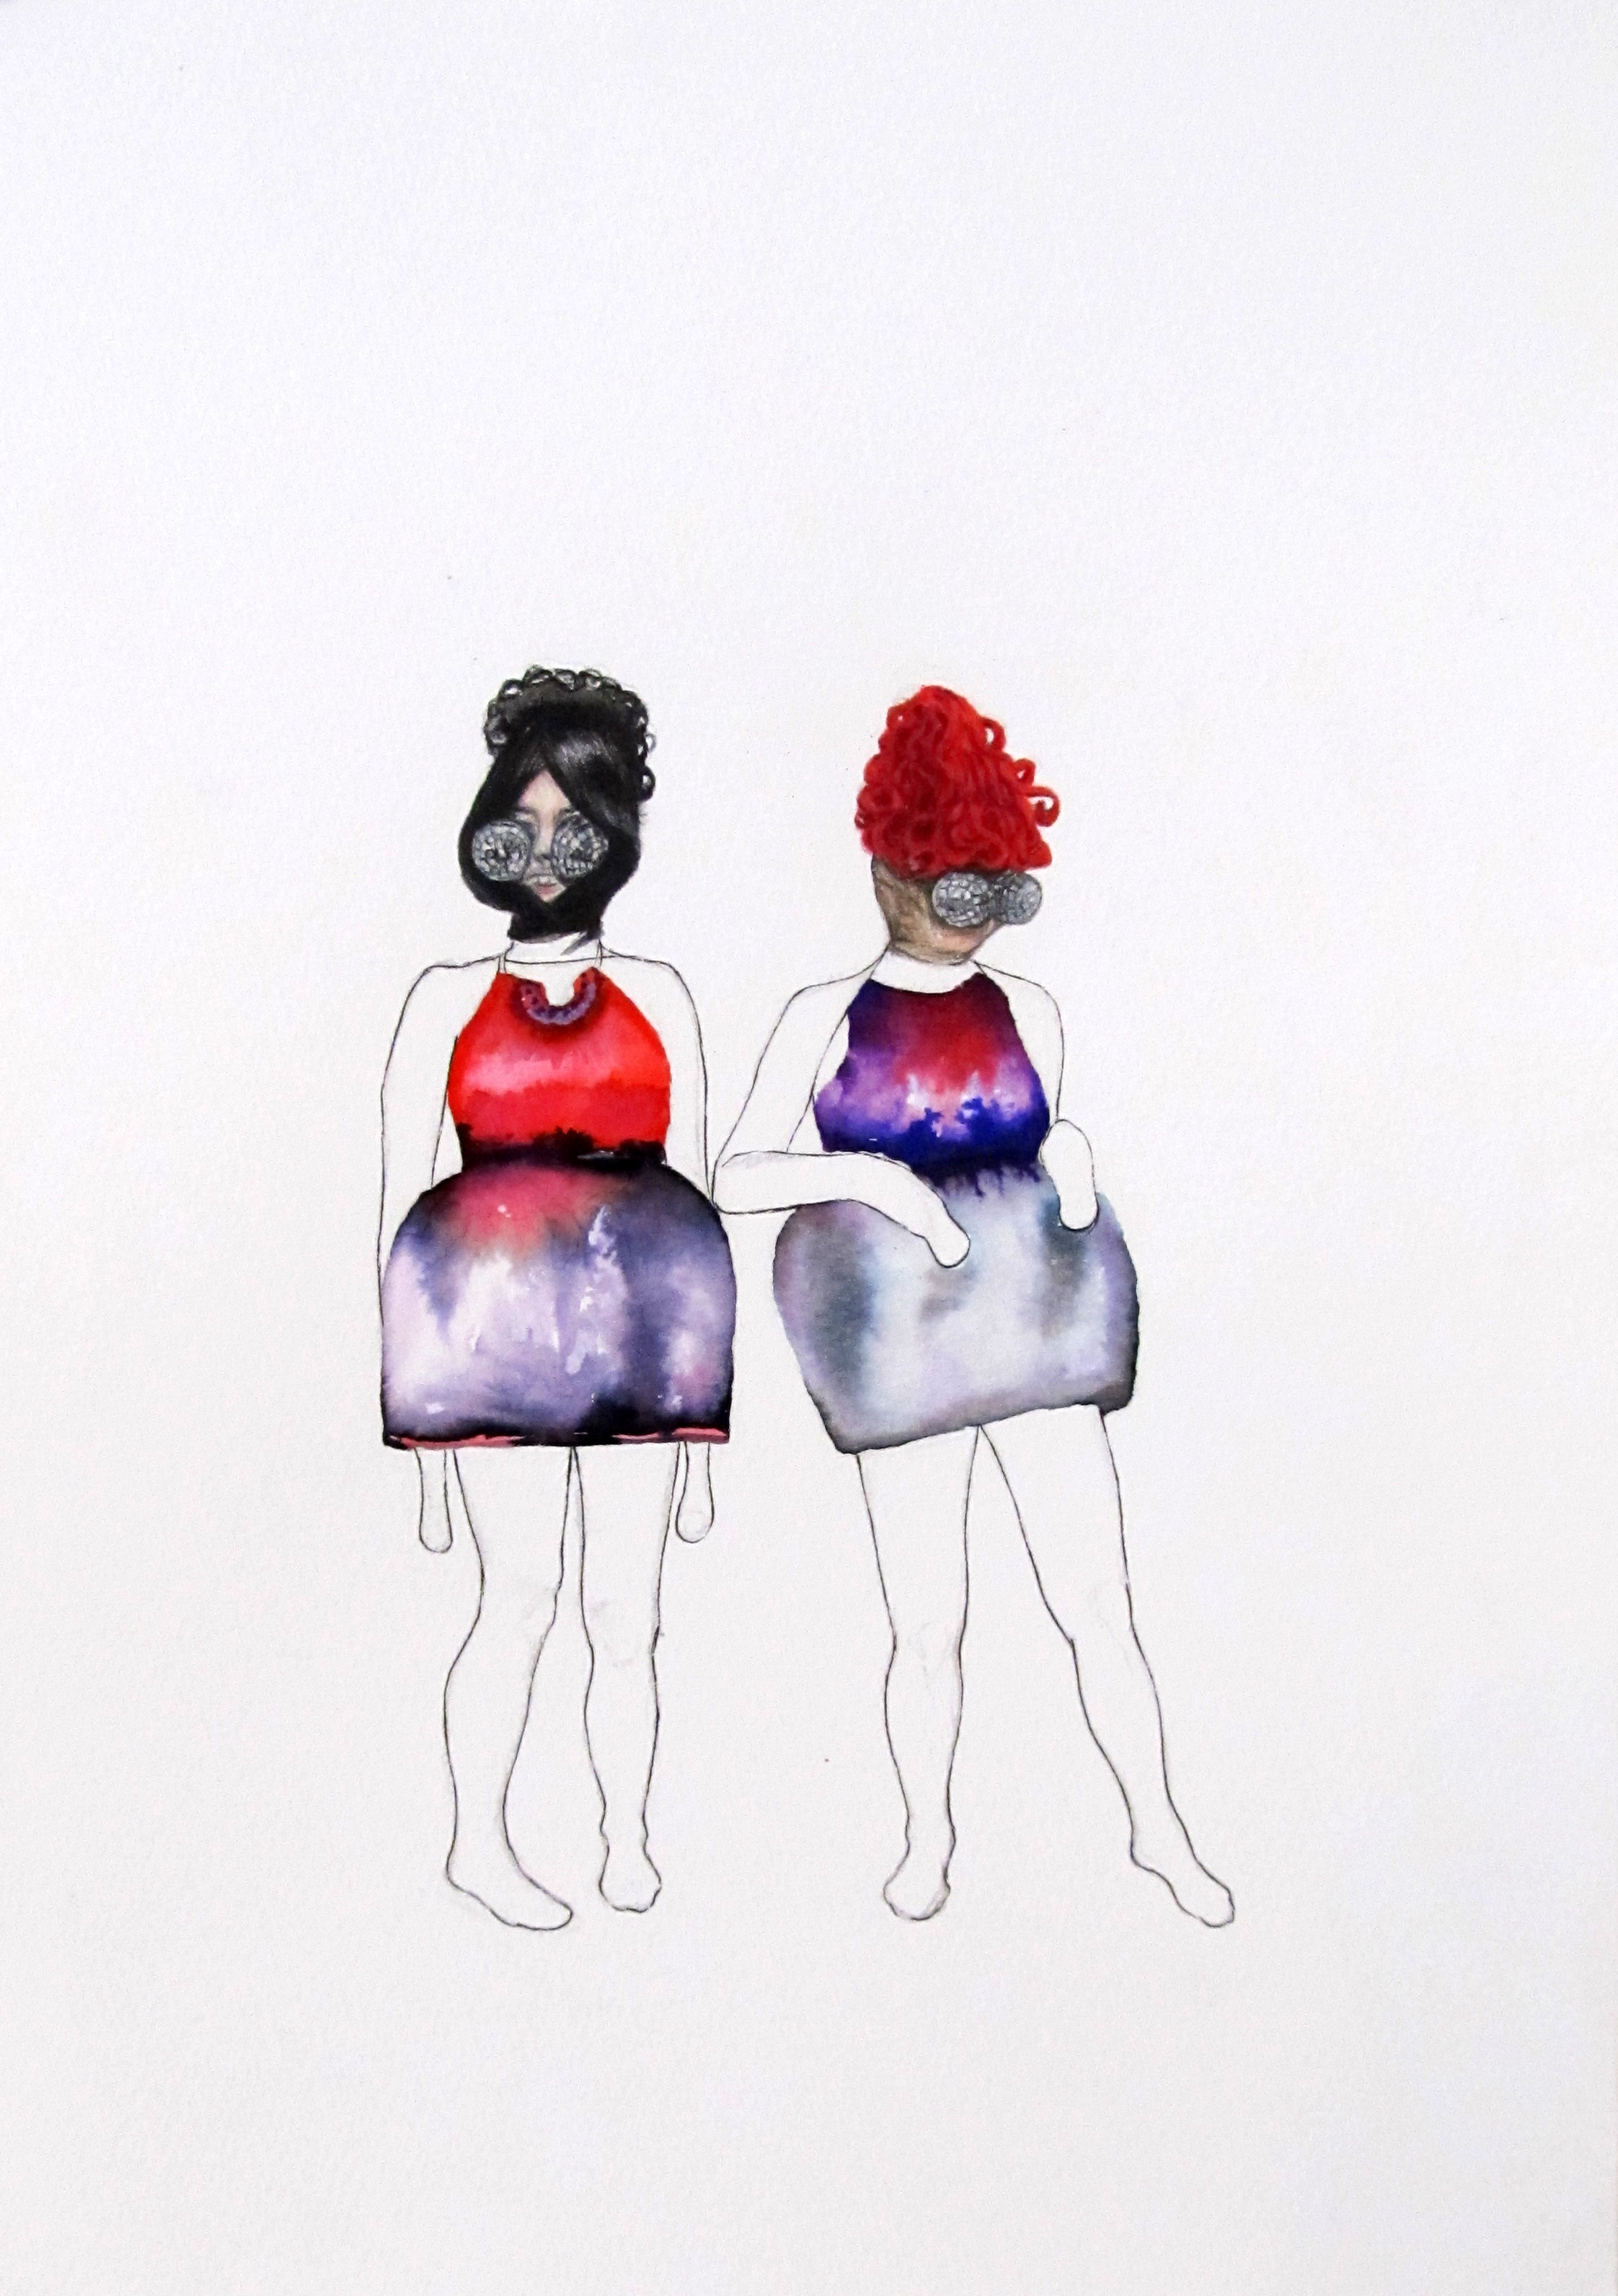 The Frivolous Sisters (they gossip too much) / 24 x 34 cm / Colored pencil & ink on paper SOLD